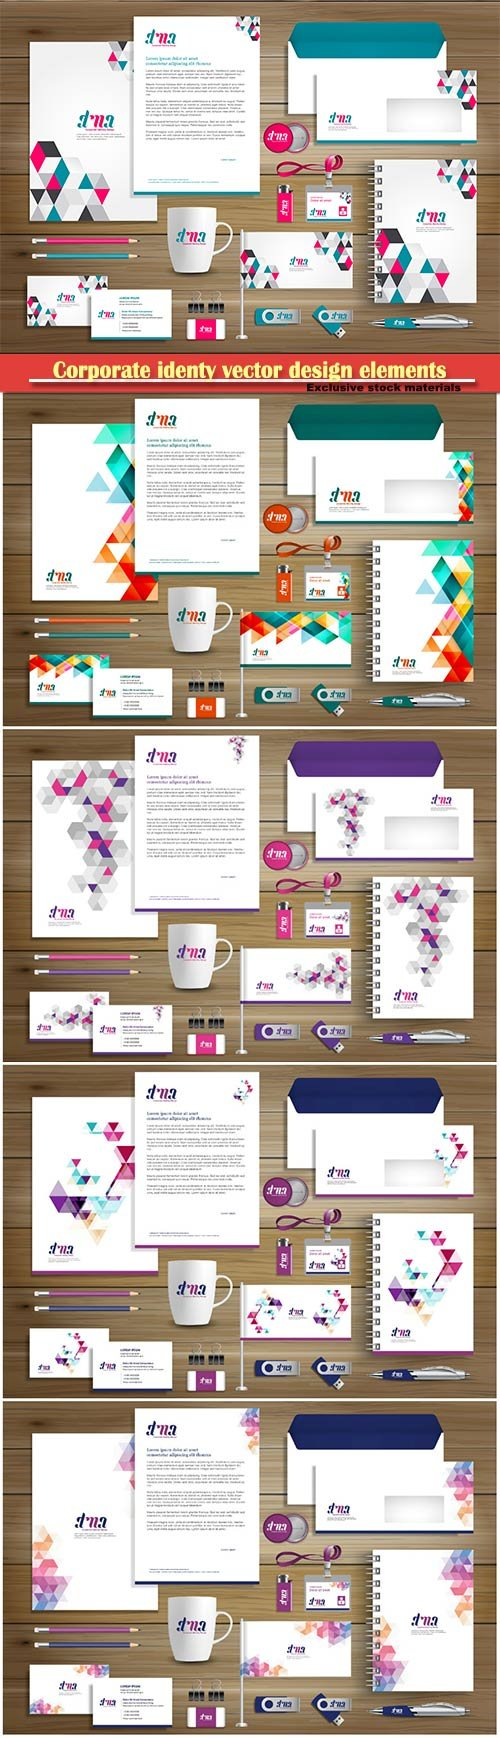 Corporate identy vector design elements illustration template